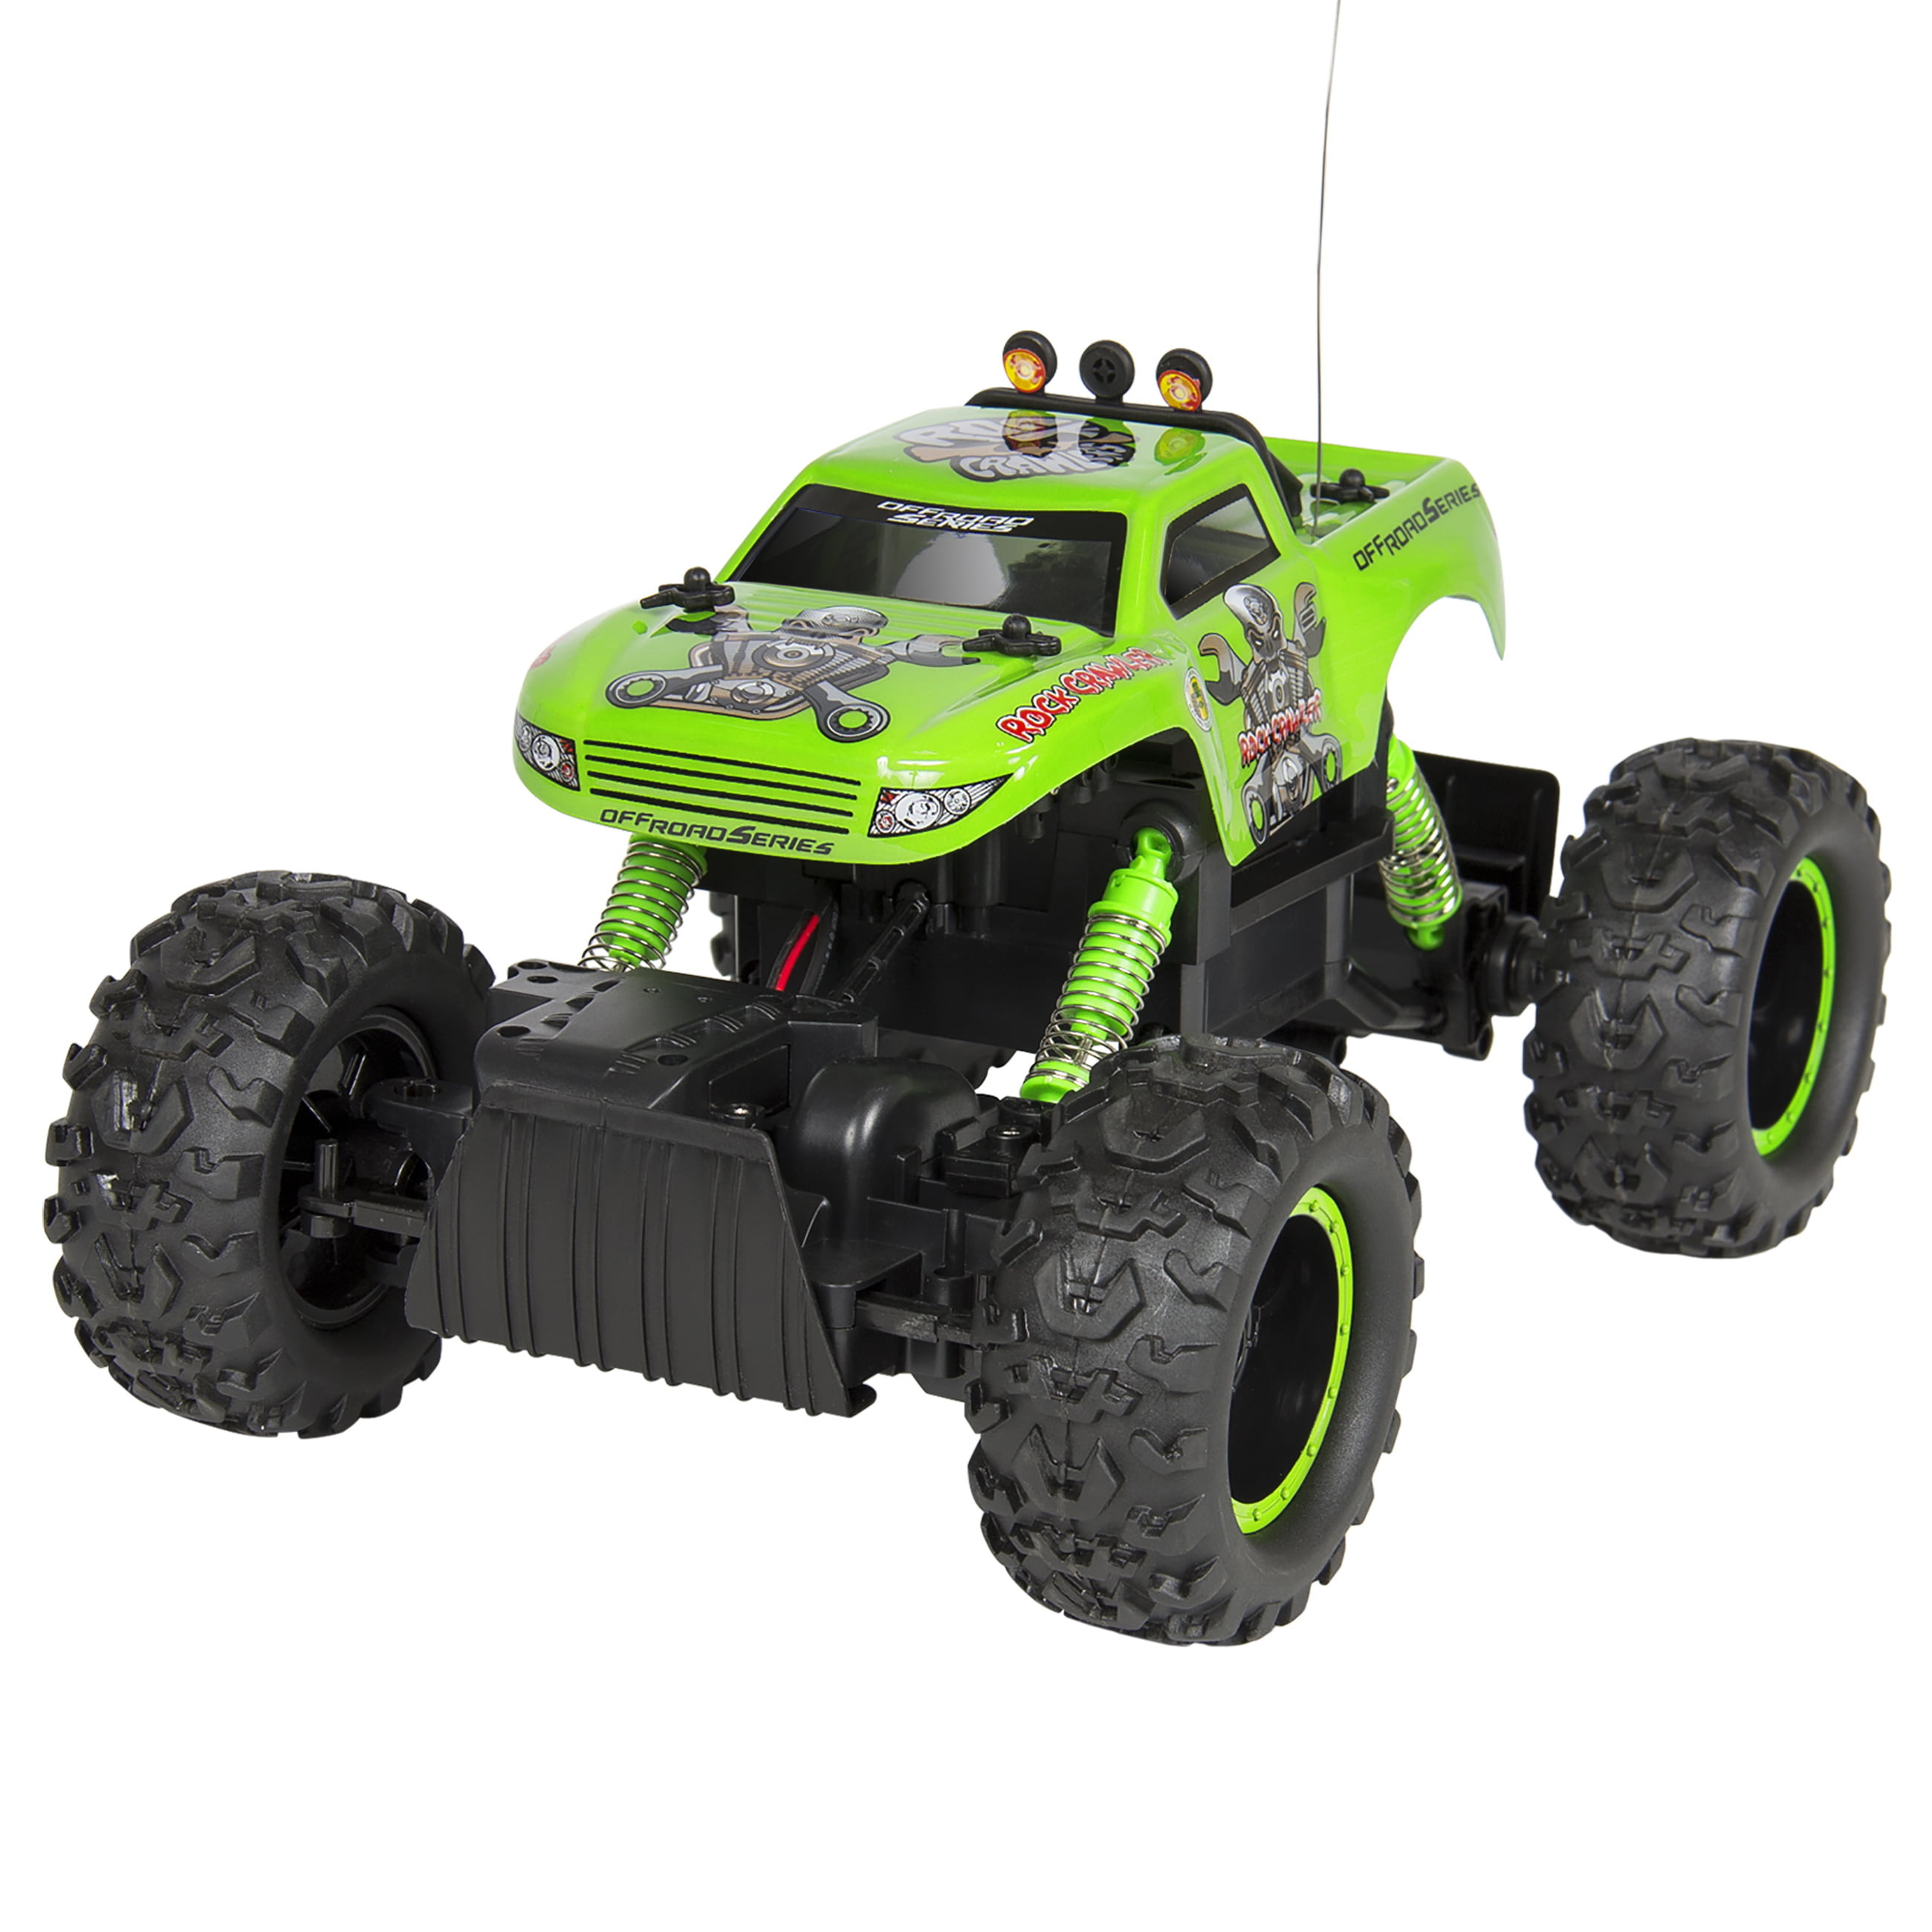 remote control trucks 4x4 images galleries with a bite. Black Bedroom Furniture Sets. Home Design Ideas